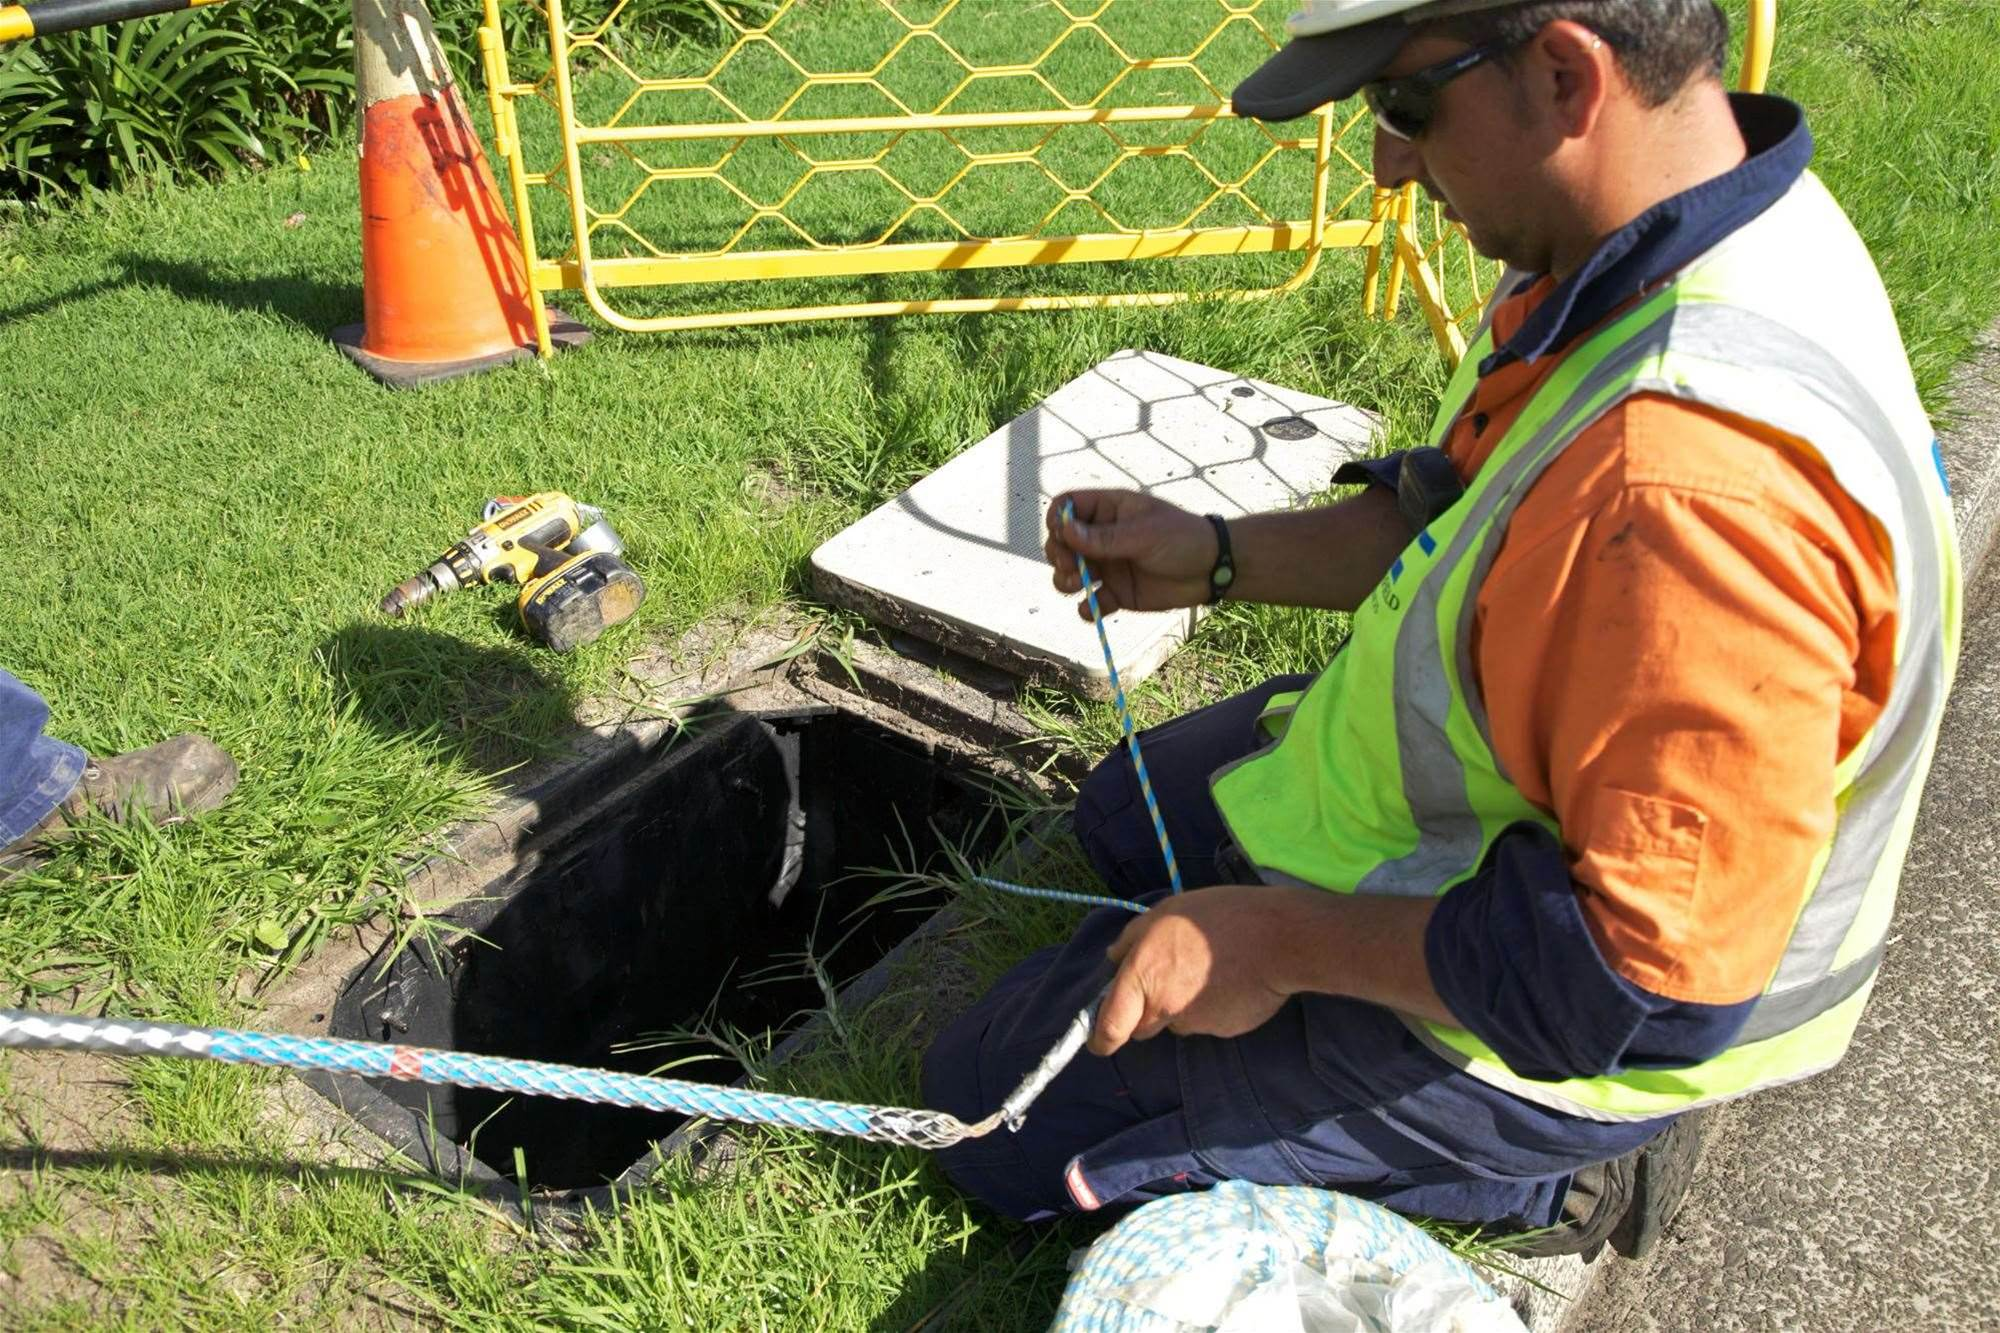 NBN spent $14m on 1800km of new copper for FTTN